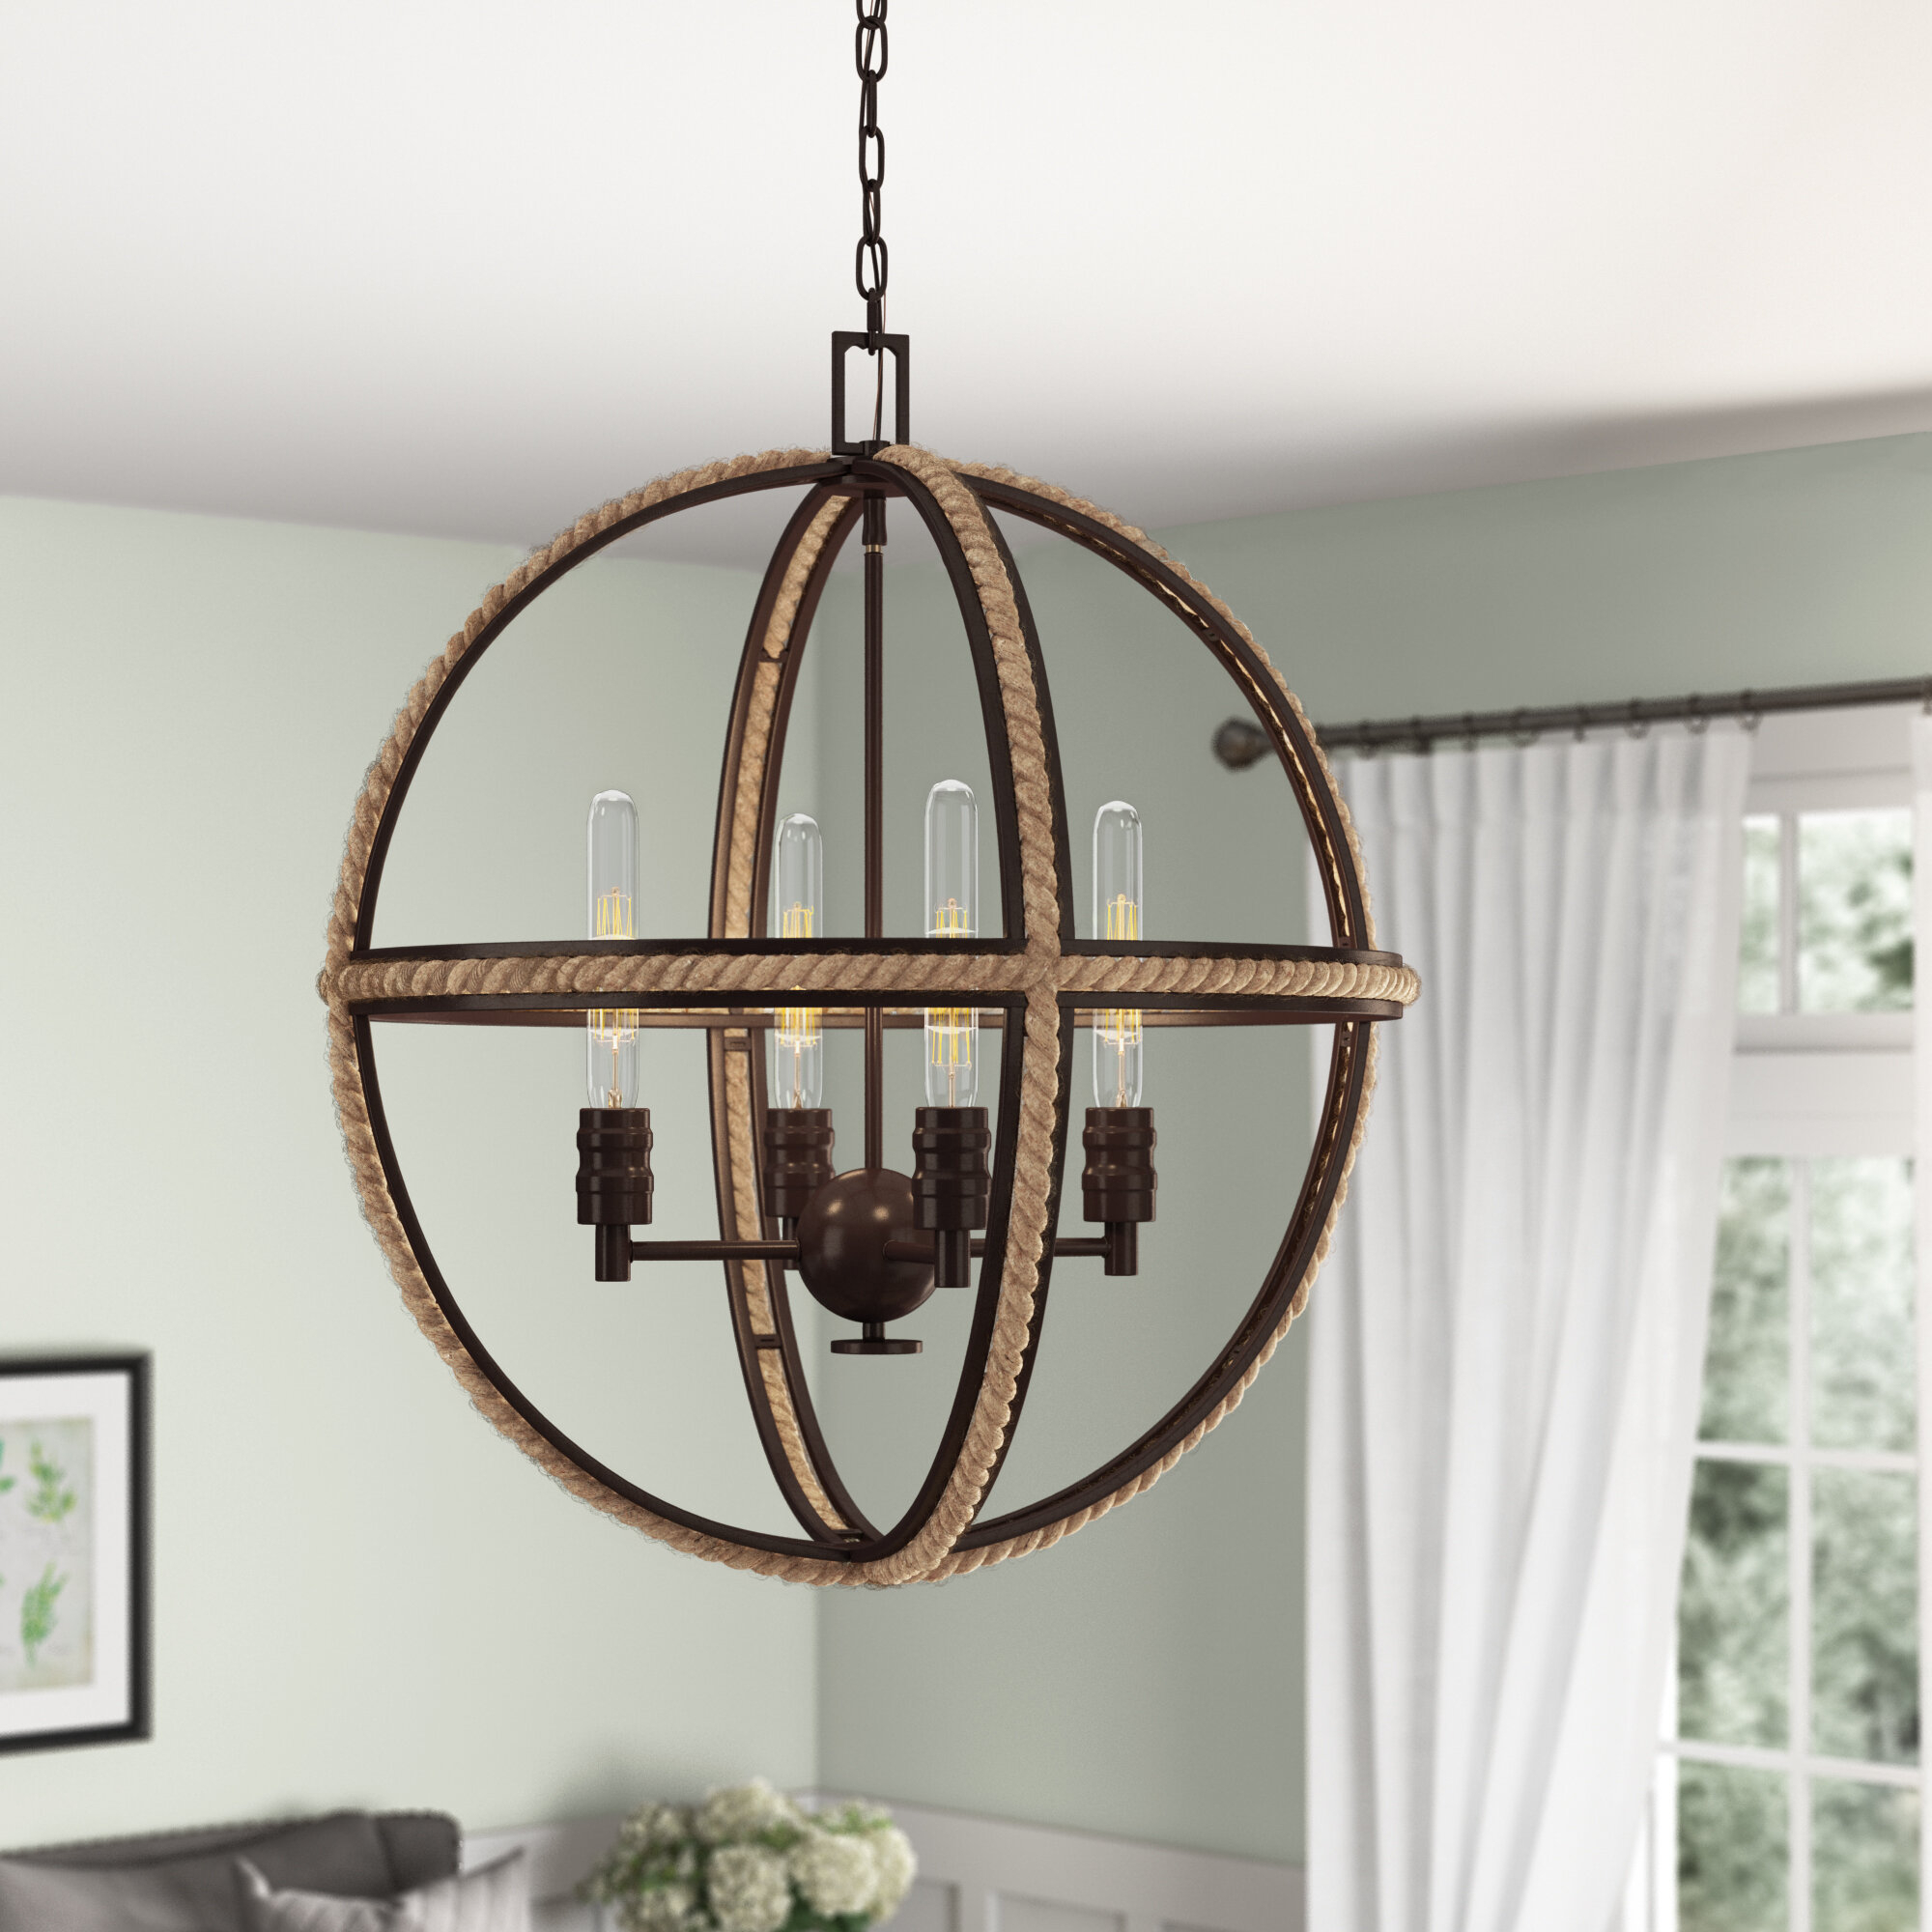 Kennett 4-Light Globe Chandelier in Joon 6-Light Globe Chandeliers (Image 18 of 30)